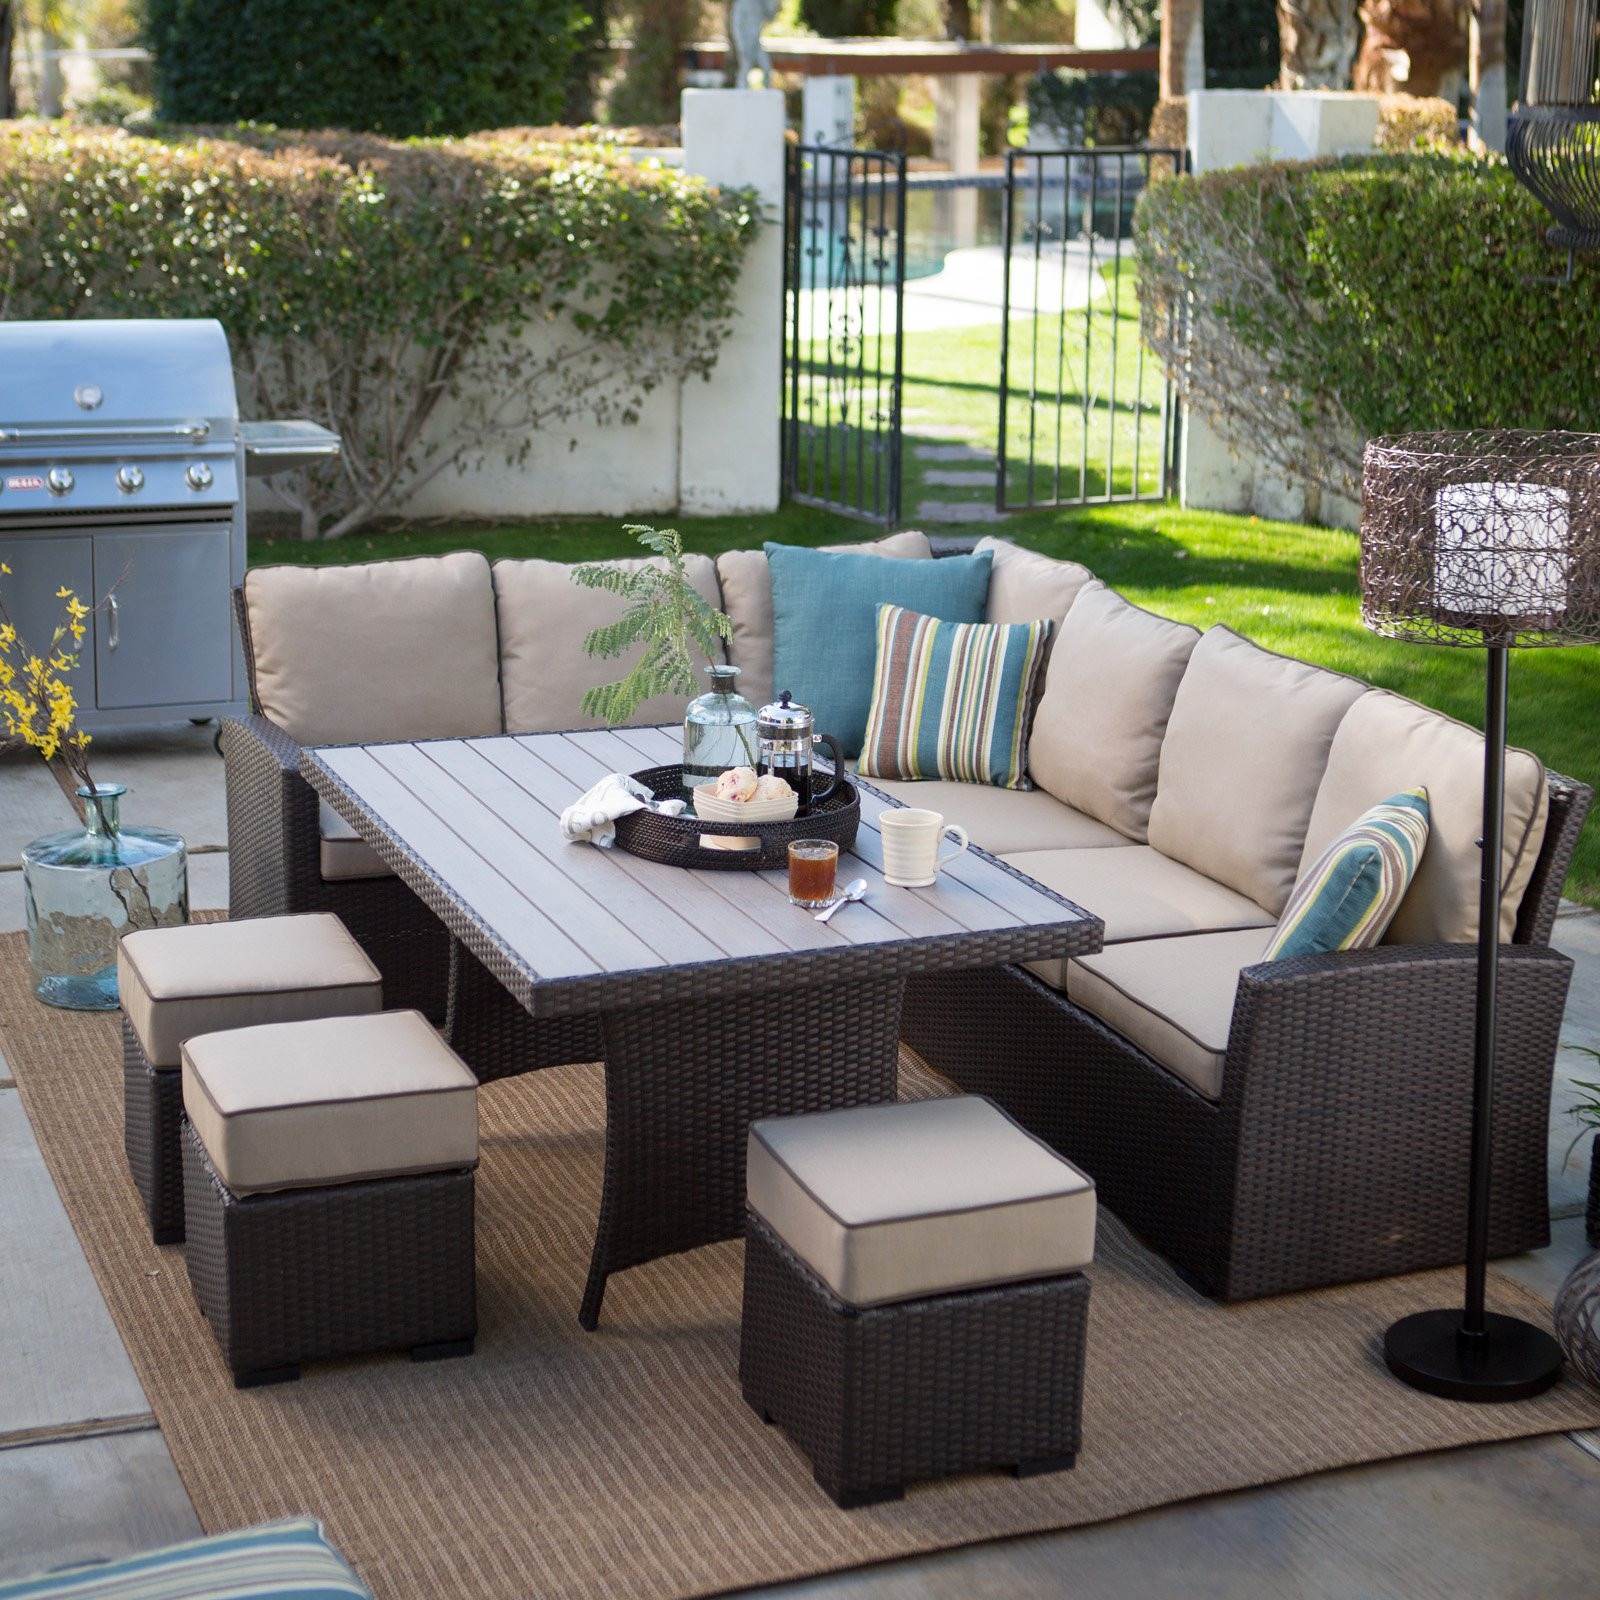 Best ideas about Patio Furniture Sets . Save or Pin Belham Living Monticello All Weather Wicker Sofa Sectional Now.